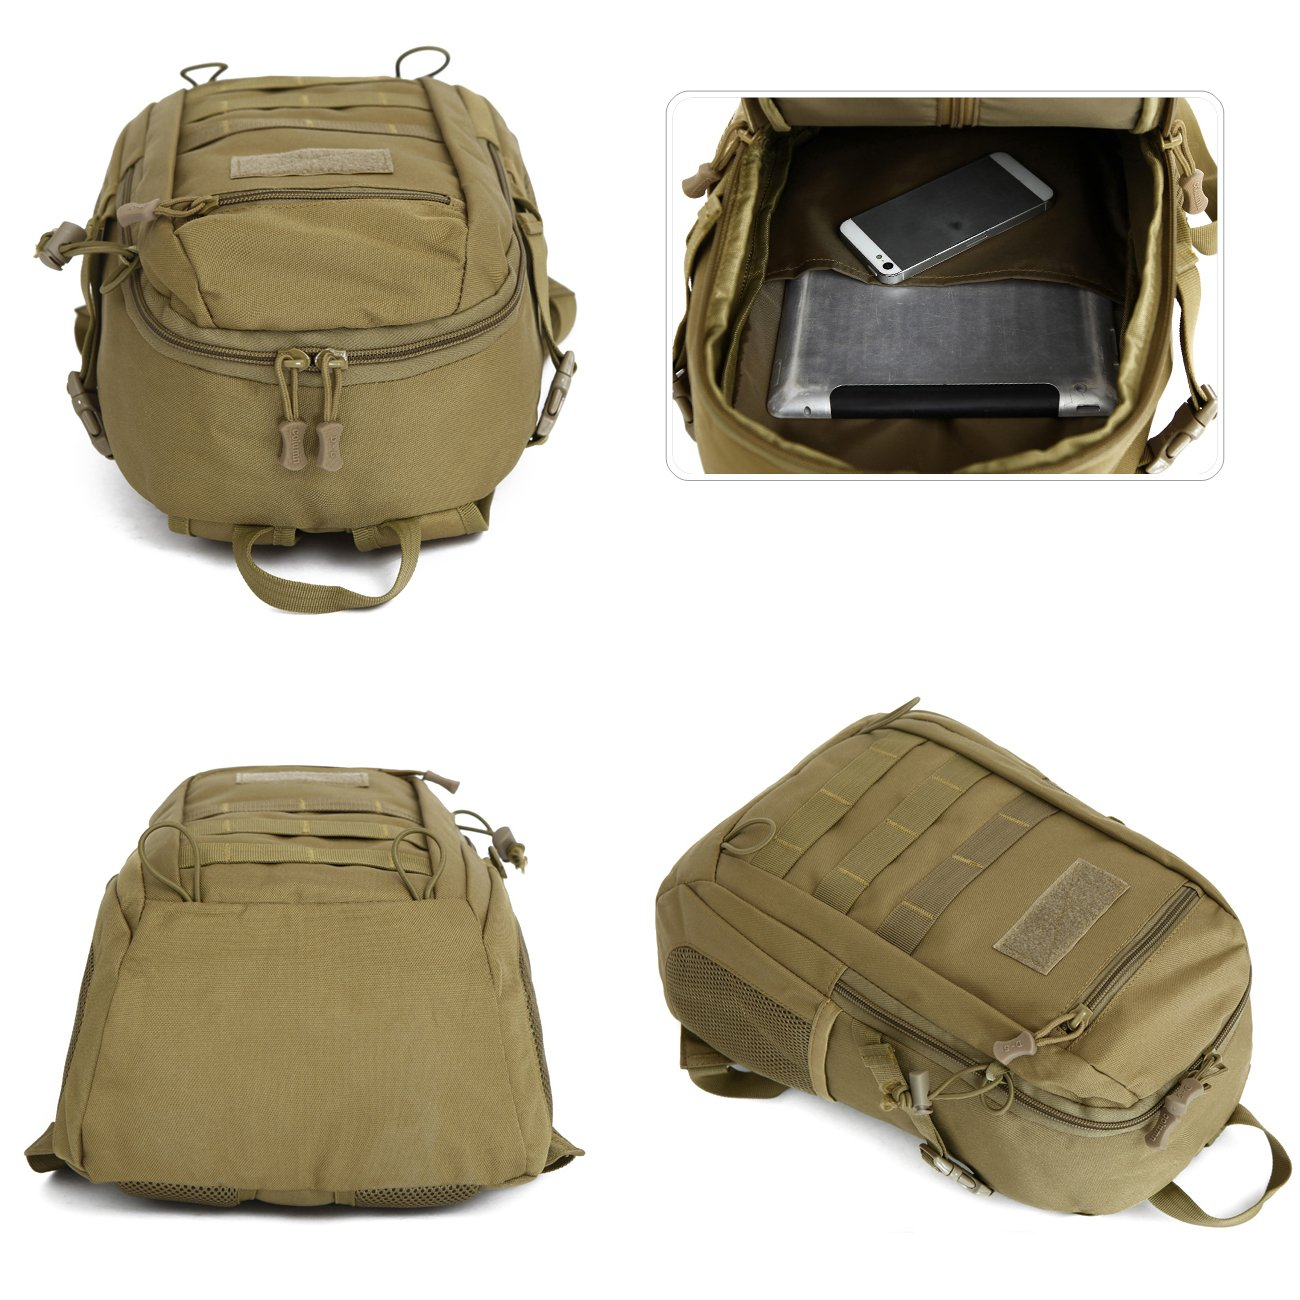 ce8698af77a7 Details about Military Tactical Backpack 2Styles Rucksack Bag For School  Camping Hiking Travel